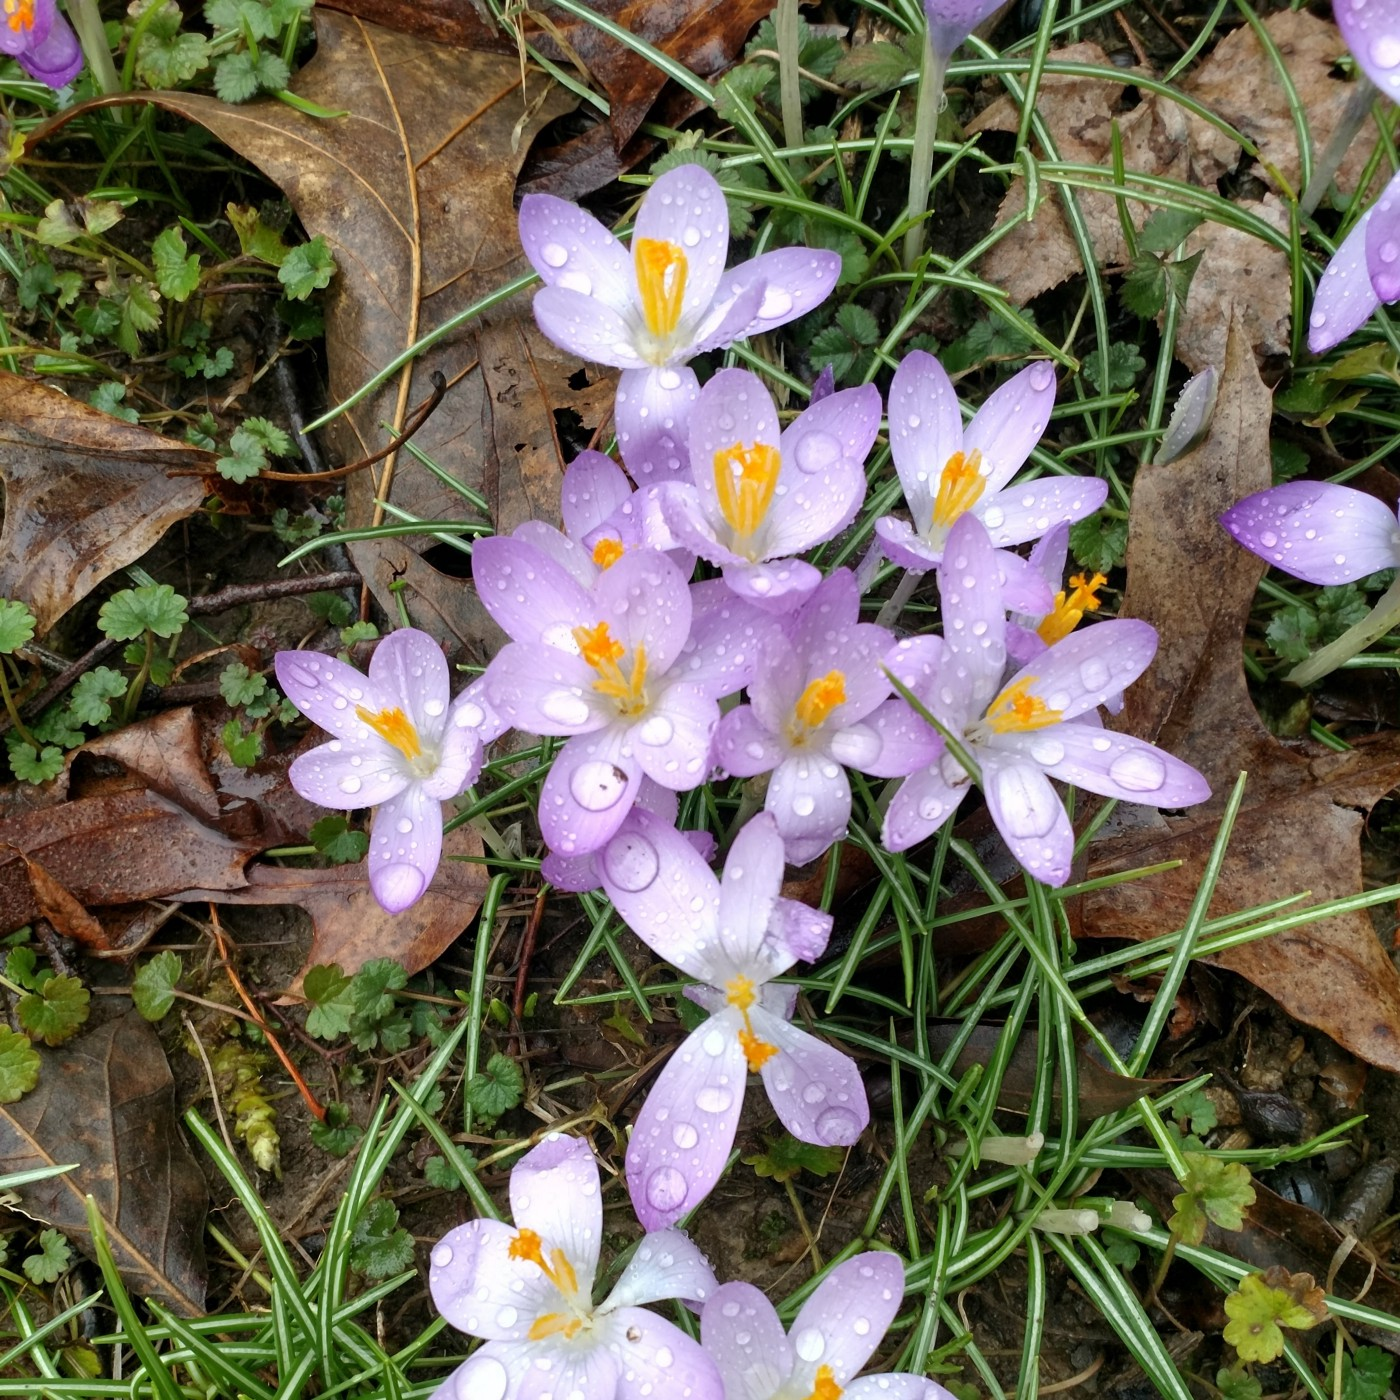 Light purple crocuses are emerging from dead winter leaves after a spring shower.